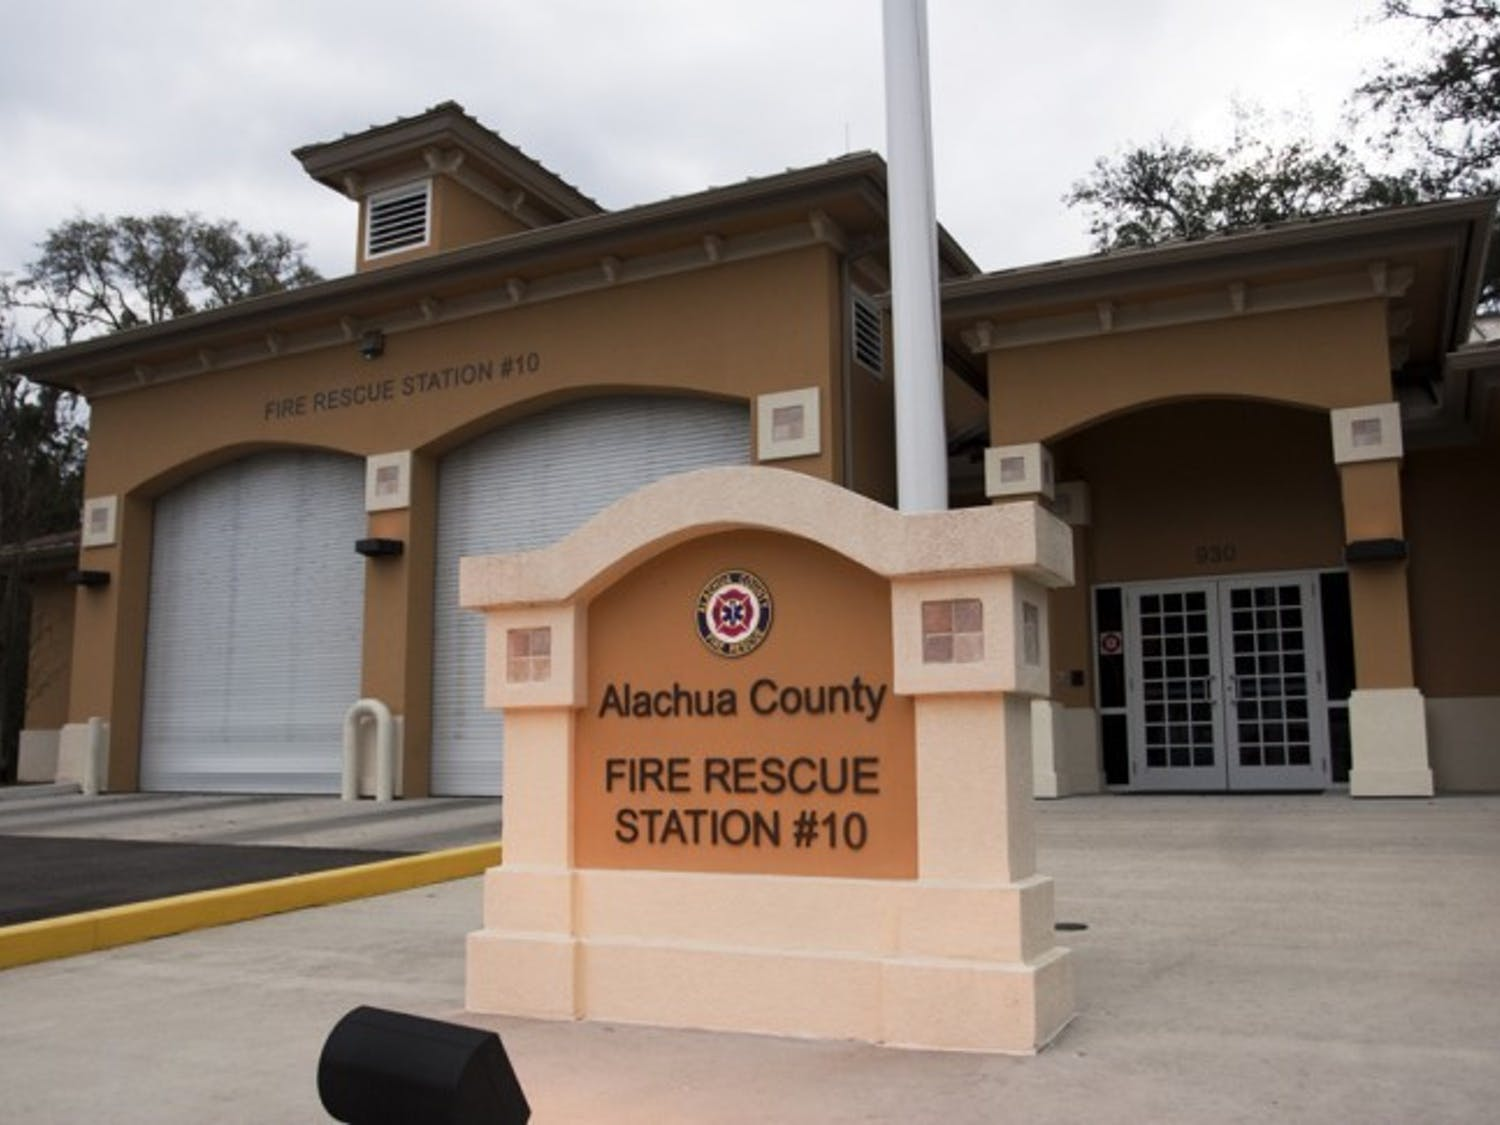 The Alachua County Fire Rescue Station, located at 930 SEFifth St., is now LEED-certified. It is the county's only certified green building and the first station to be certified in Florida.